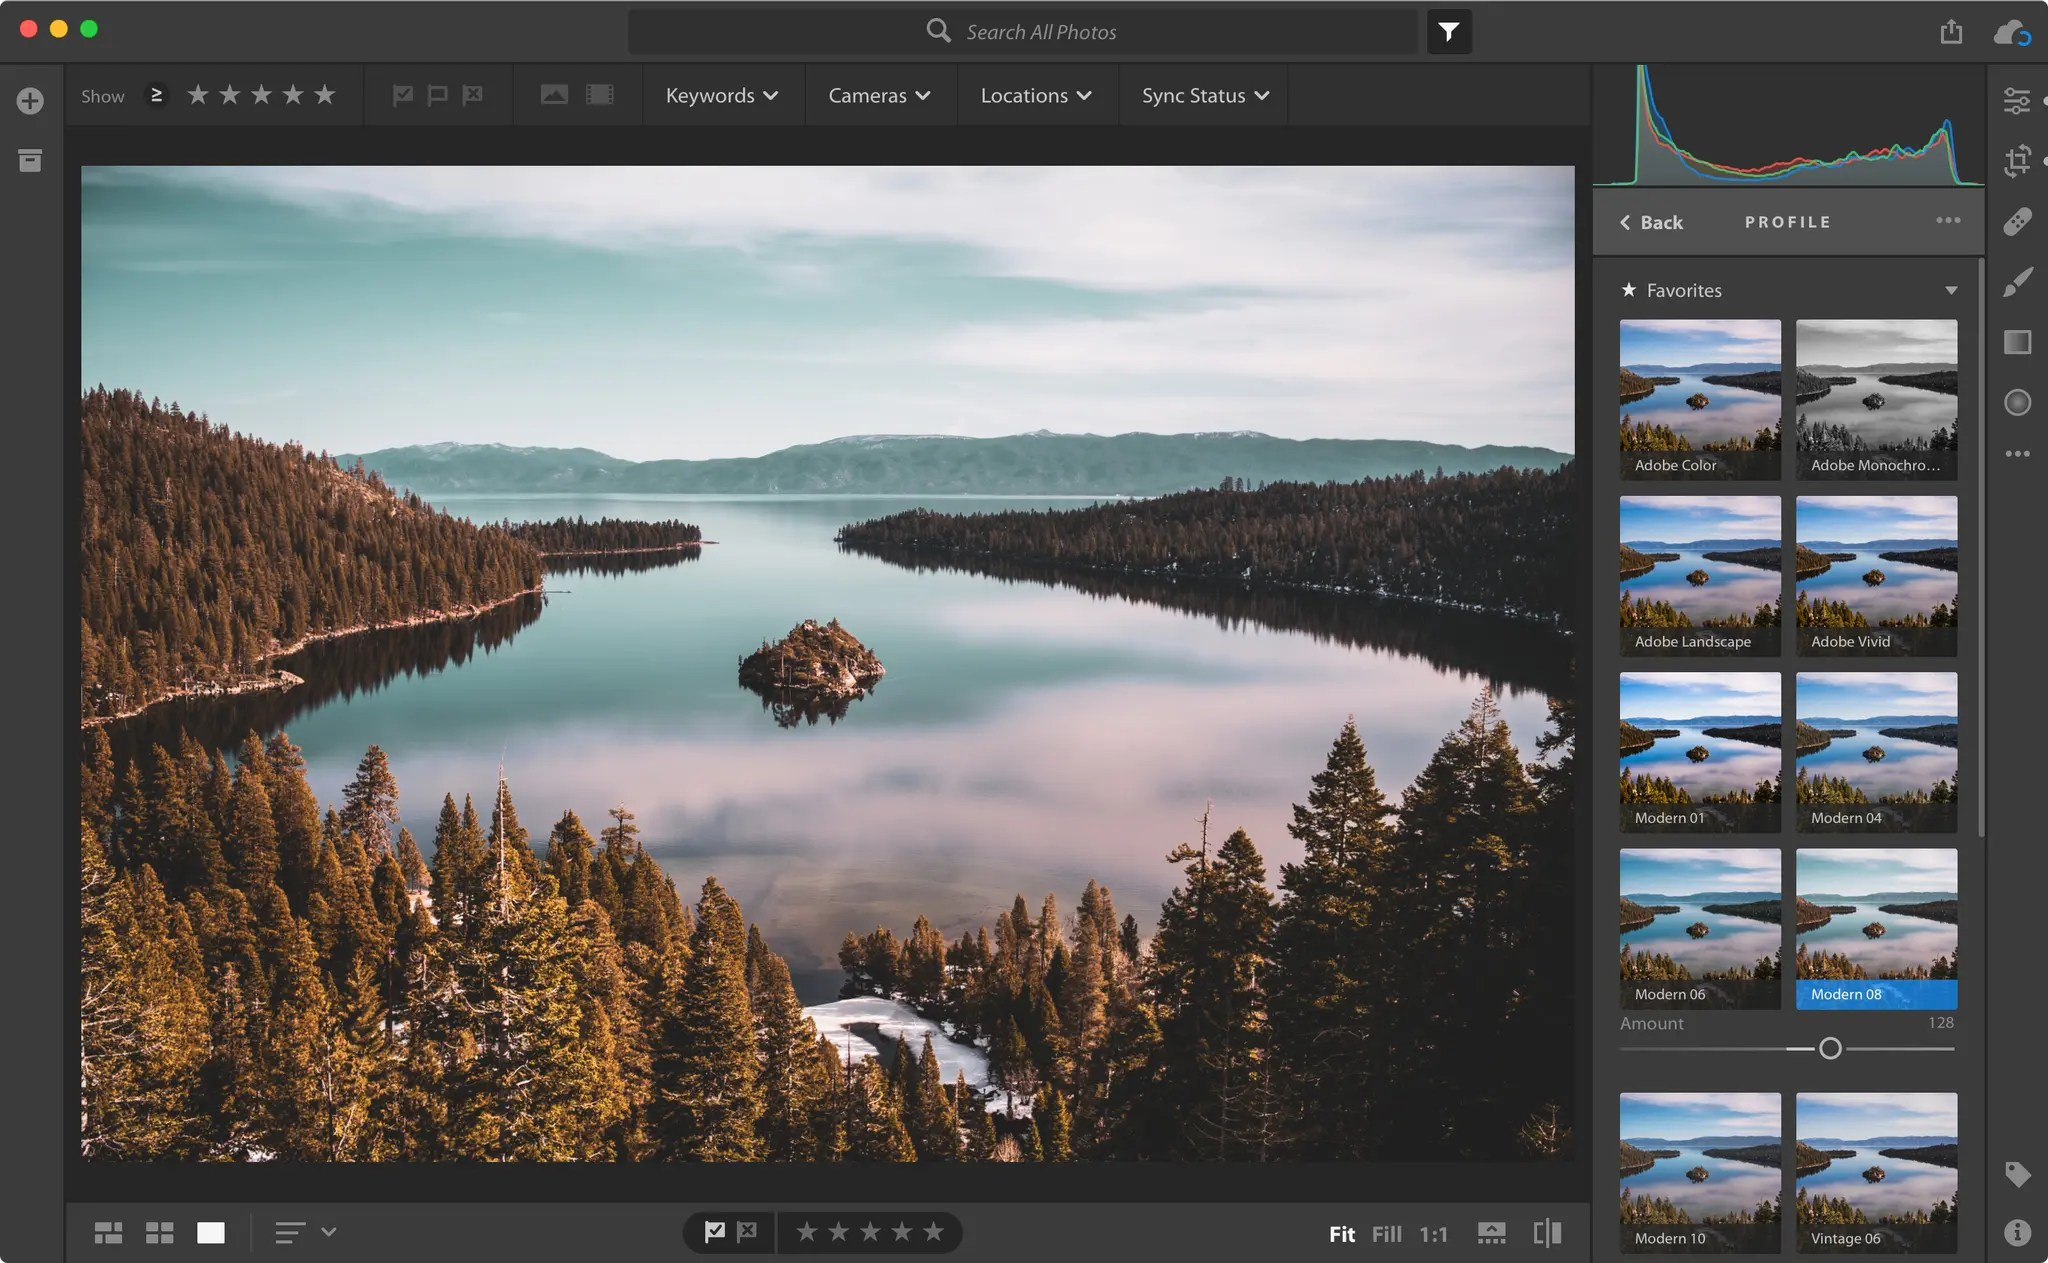 Adobe Lightrooms Latest Update Changes Camera Profiles